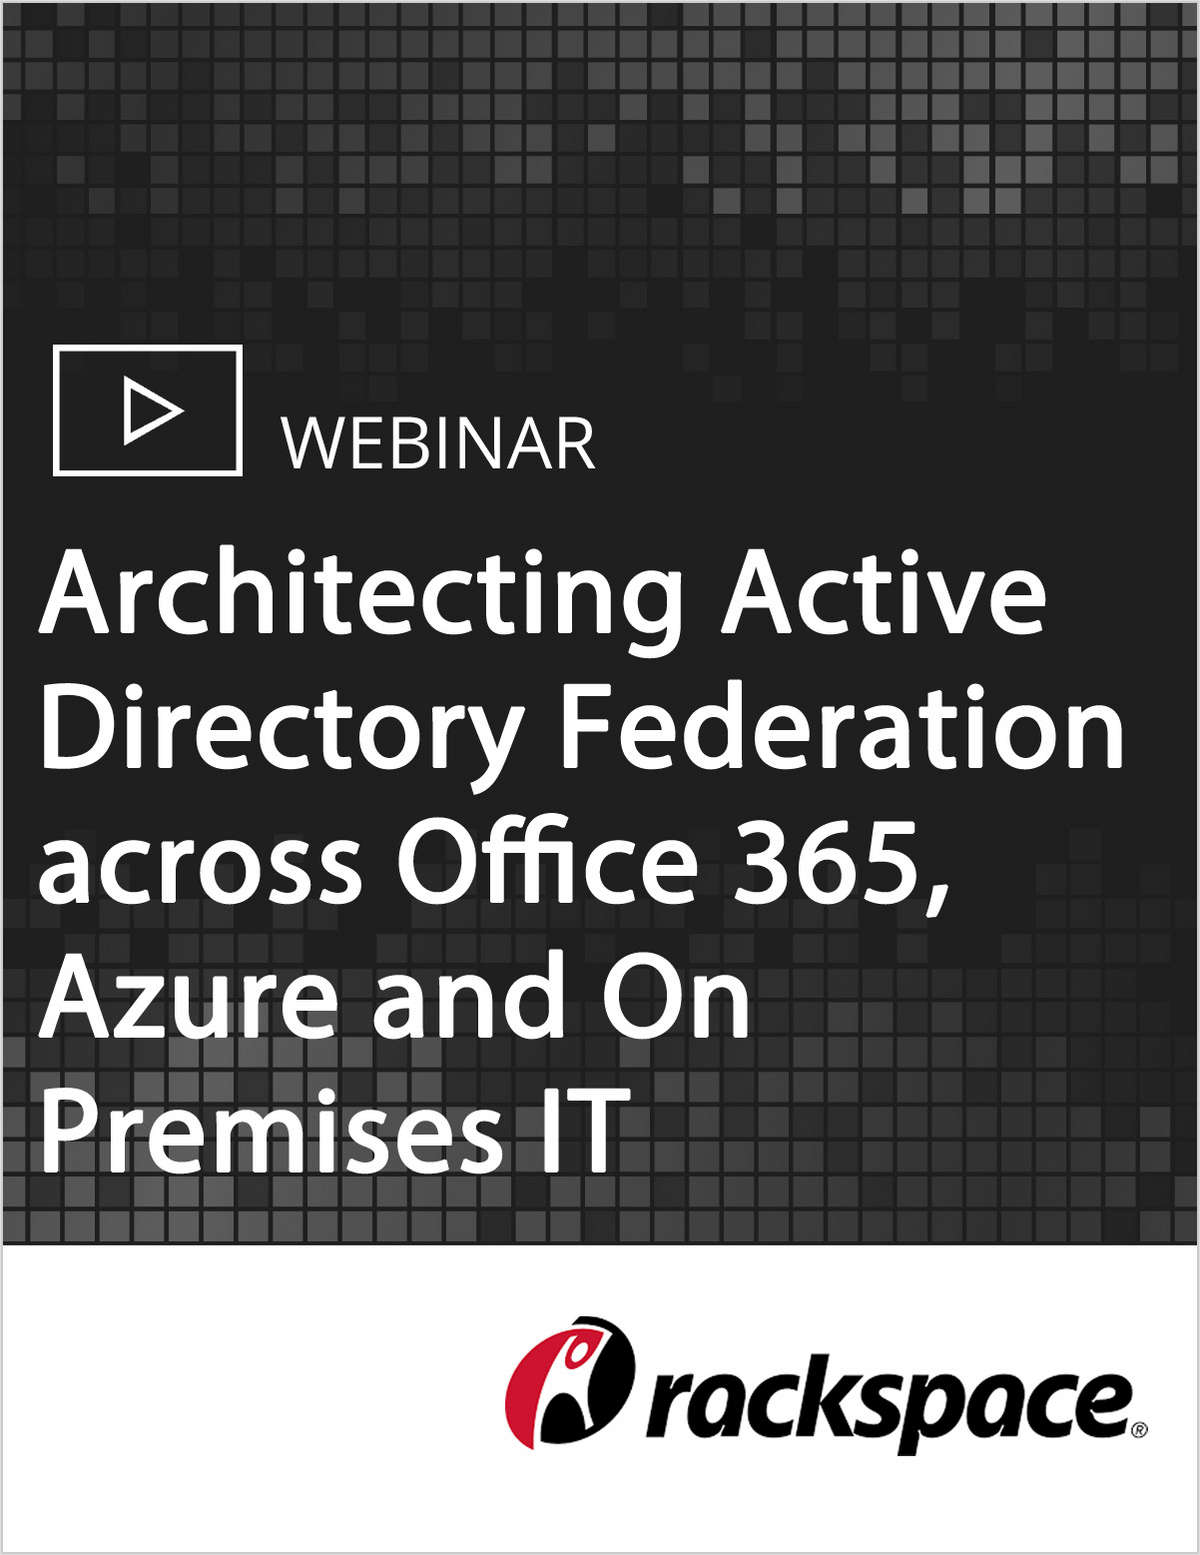 Architecting Active Directory Federation across Office 365, Azure and On Premises IT